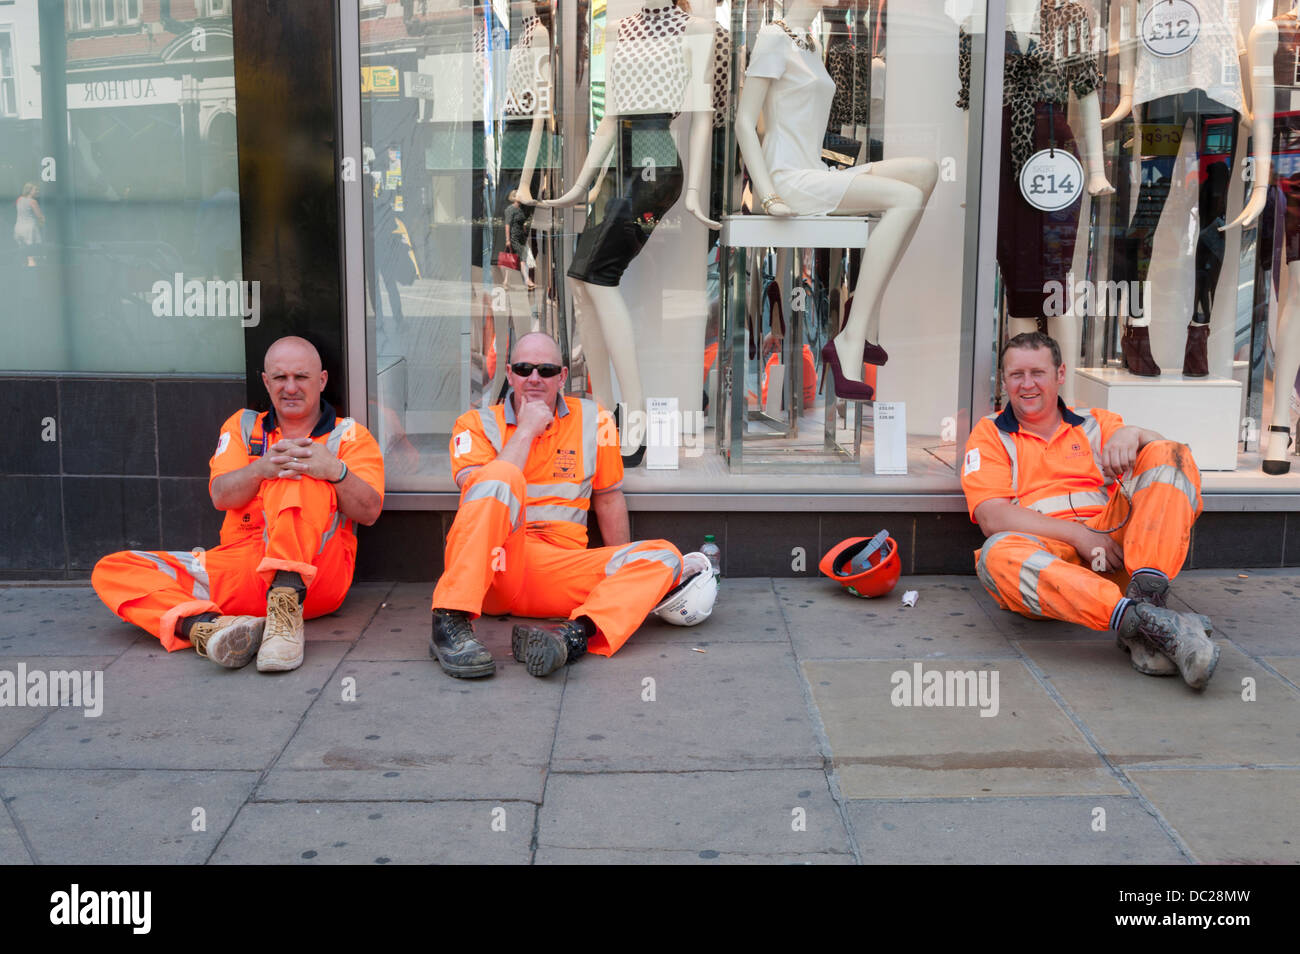 Three workmen in orange Hi Vis clothing take a break outside a shop in London UK - Stock Image